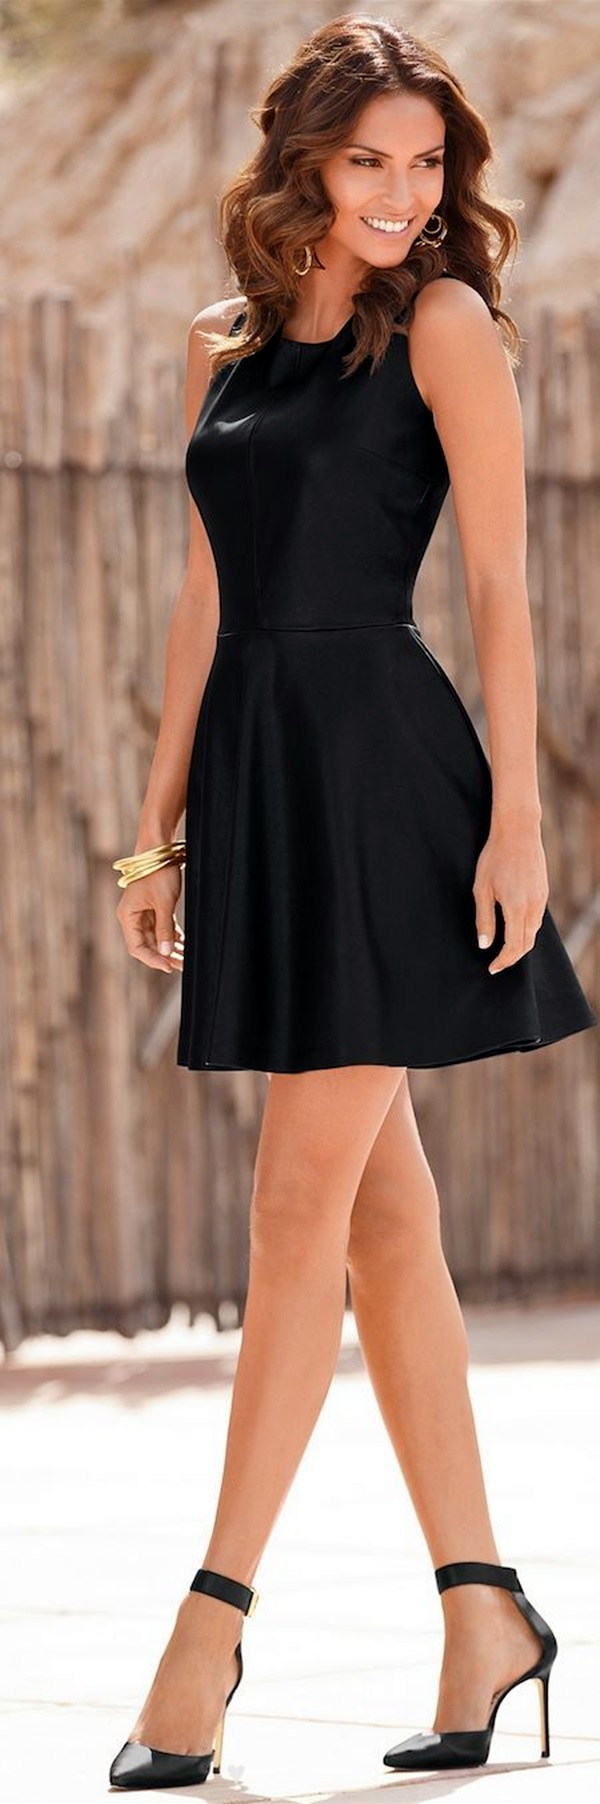 All Black Chic Outfits (6)